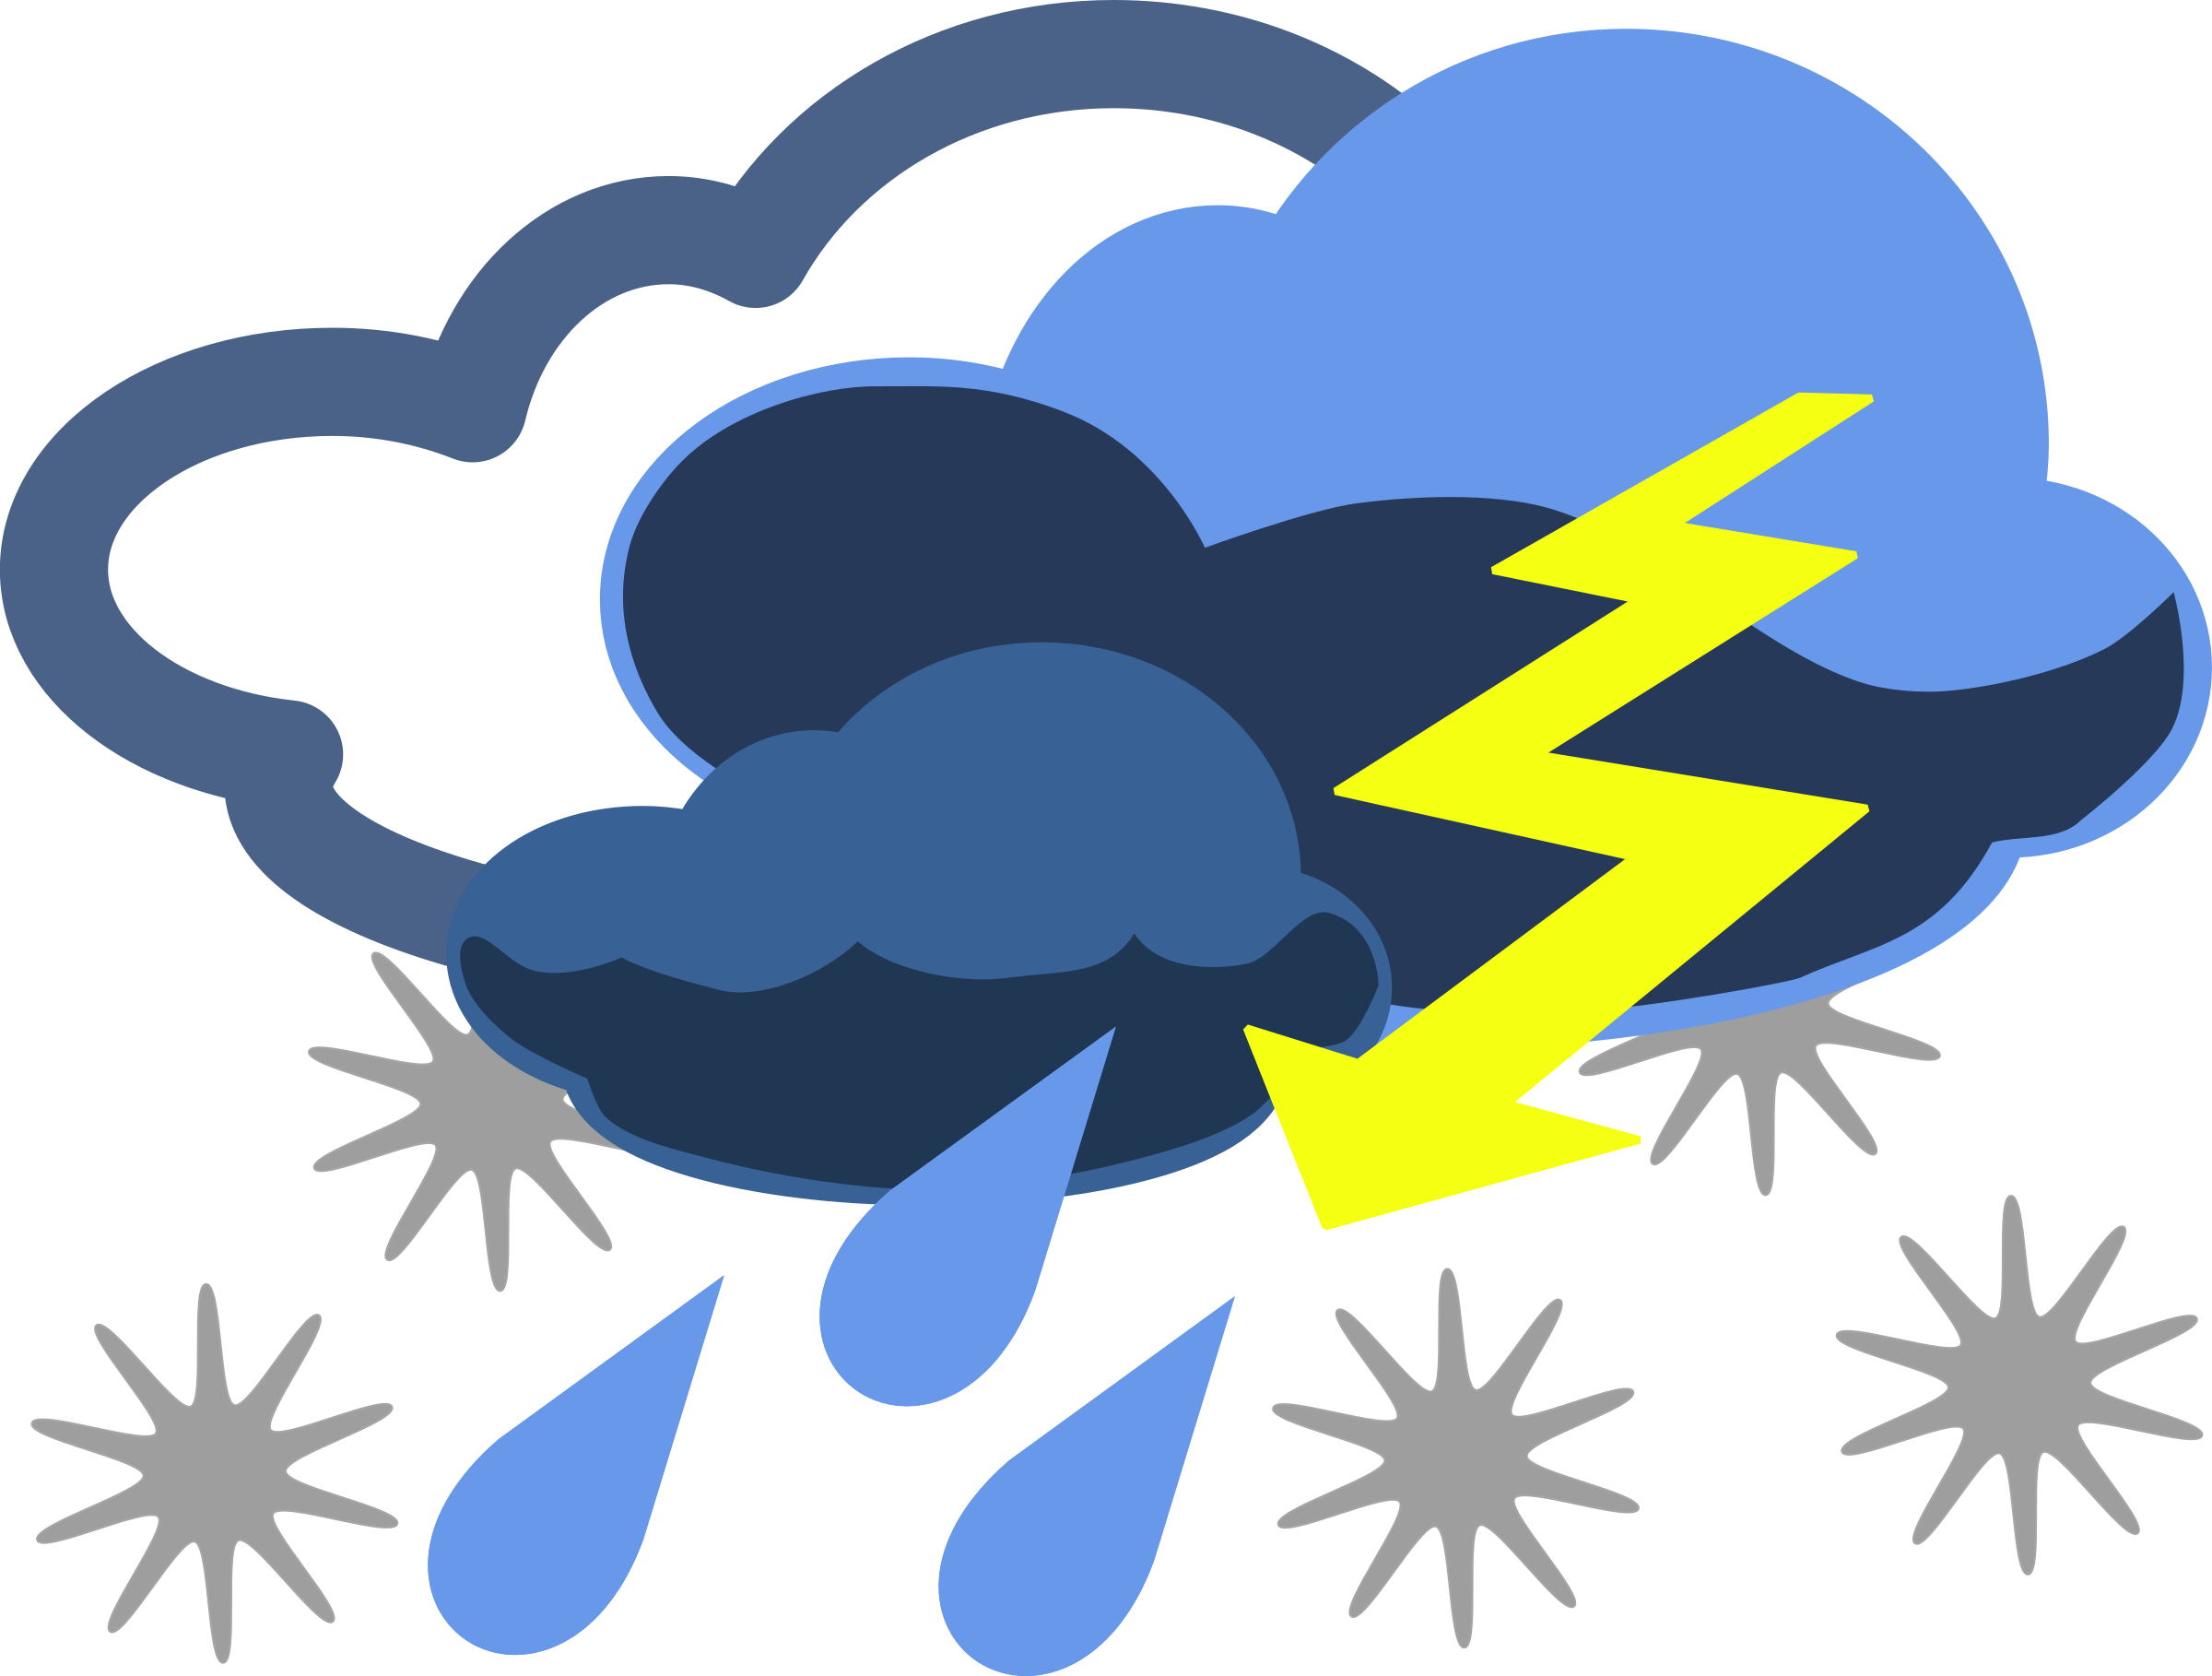 Inclement big image png. Winter clipart weather